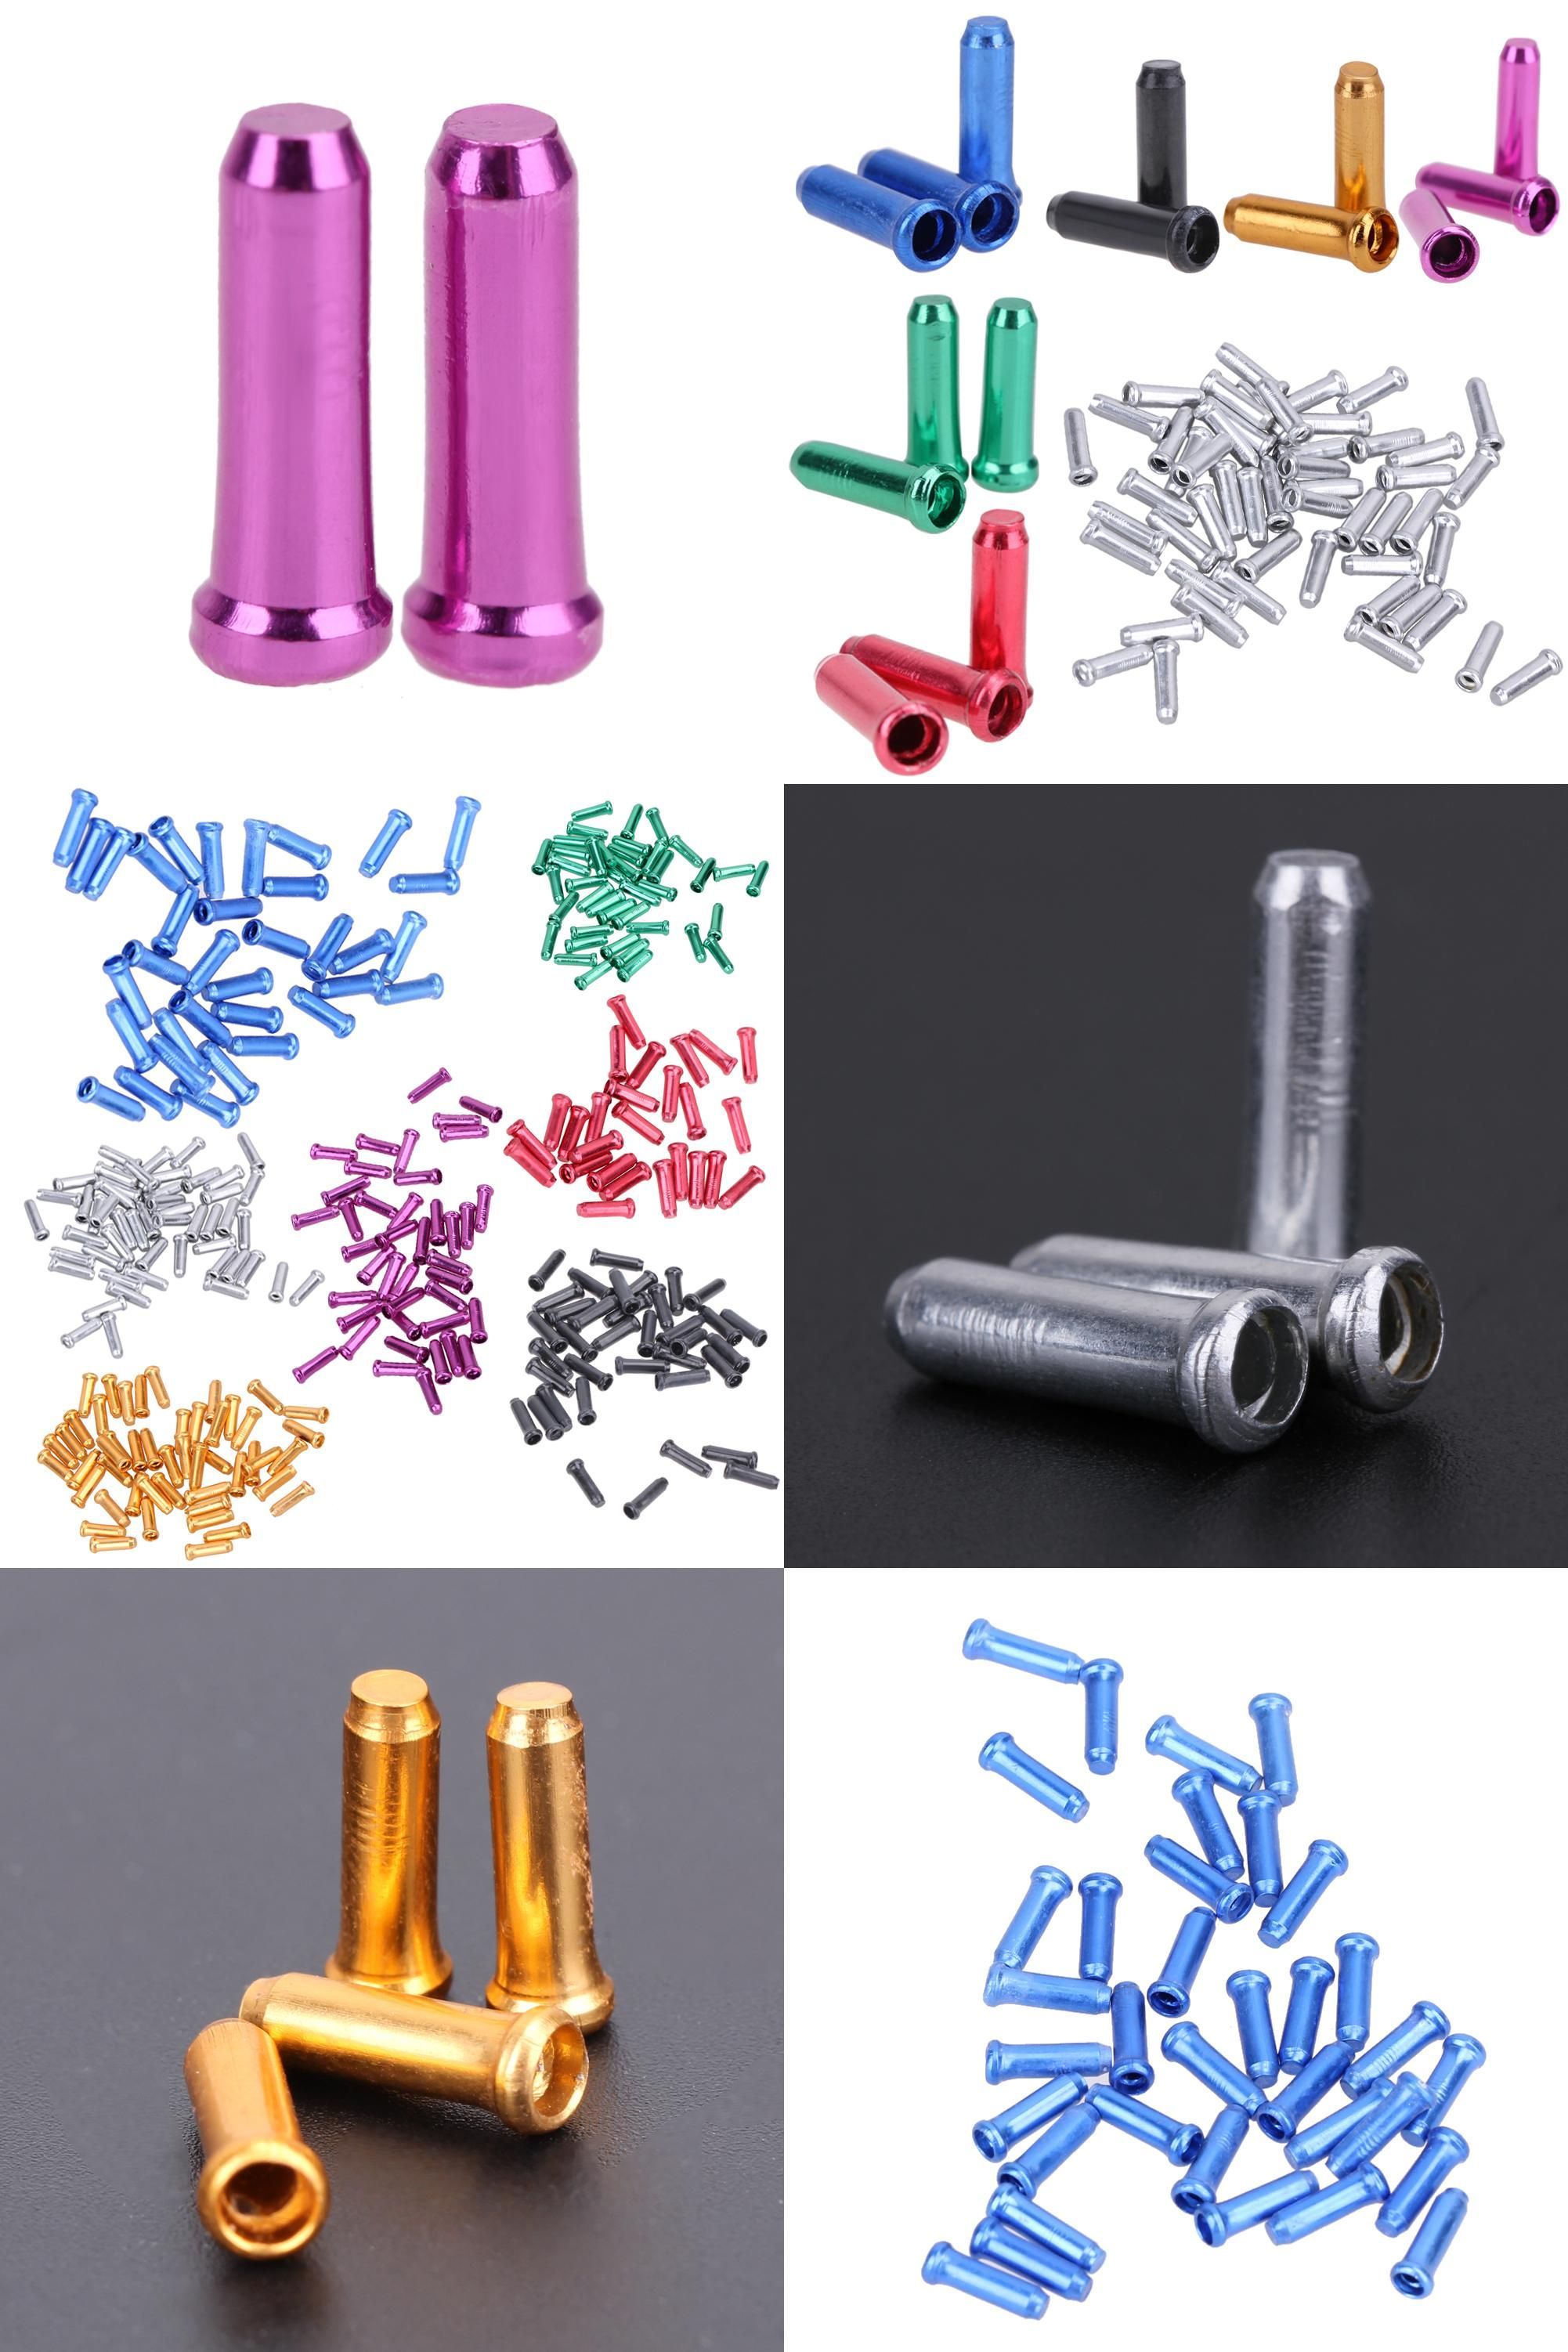 50Pcs Bike Bicycle Brake Shifter Inner Cable Tips Aluminum Alloy End Caps Tips